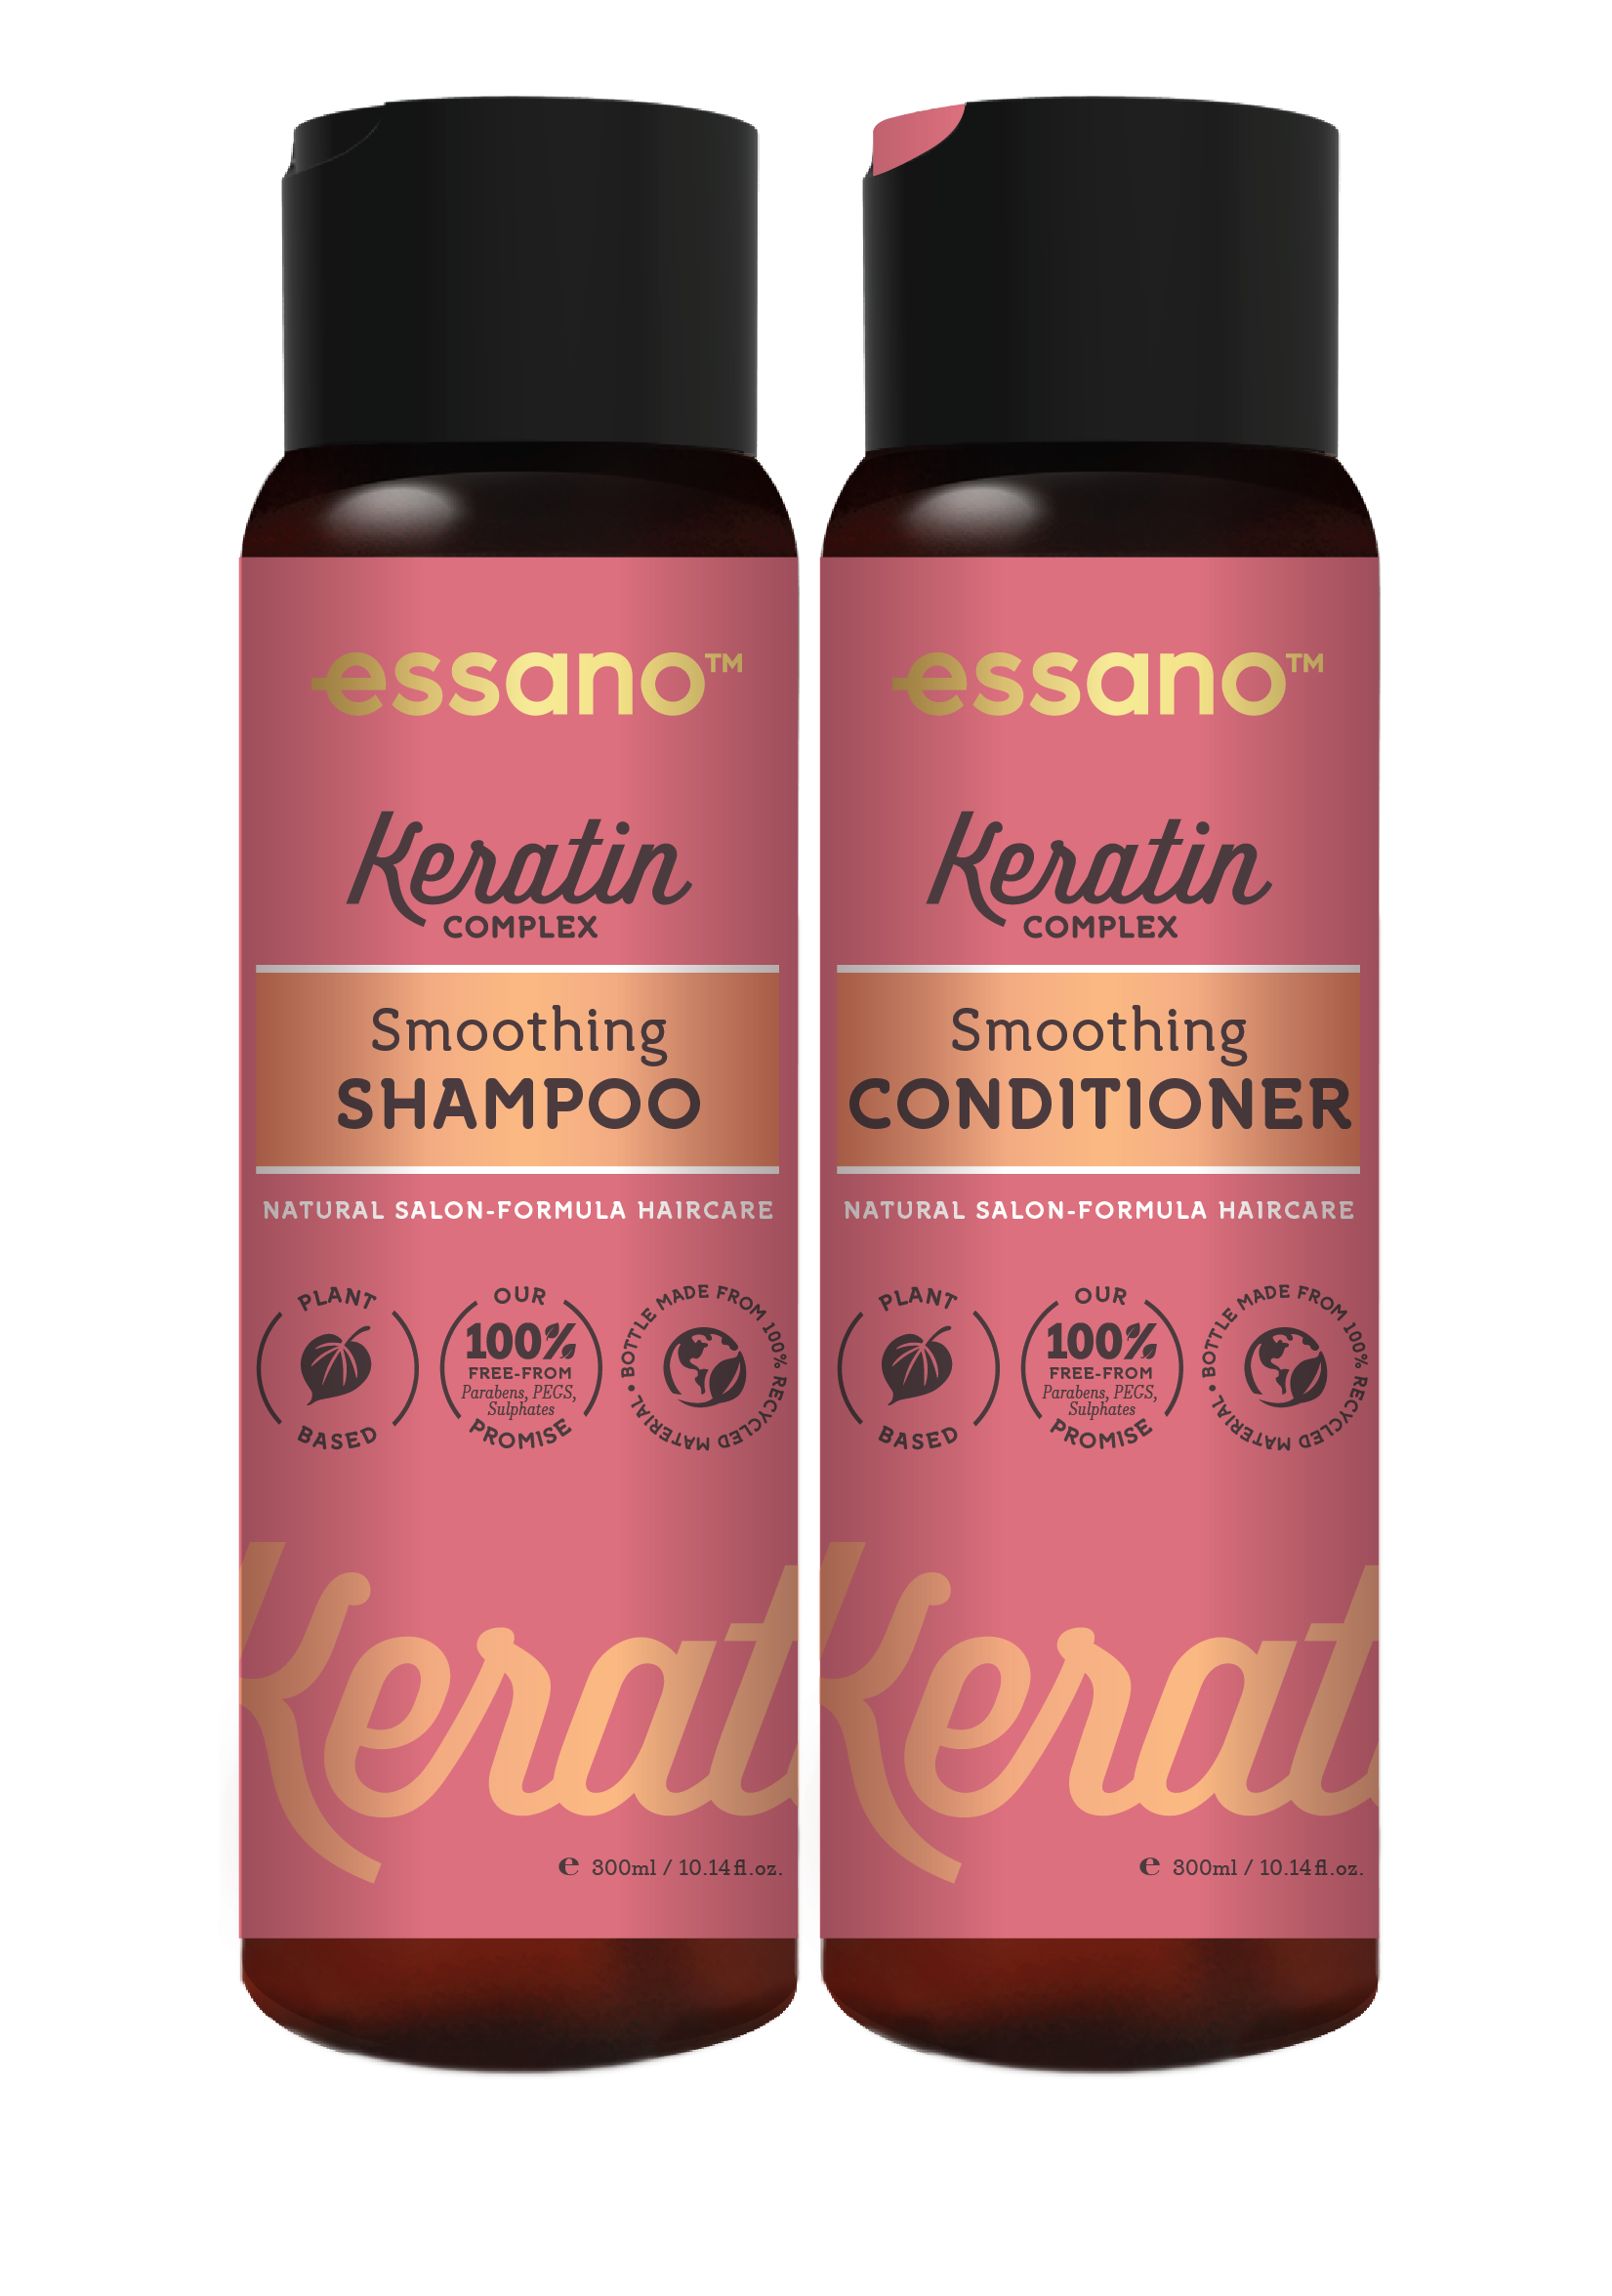 Essano Keratin Complex Smoothing Shampoo and Conditioner duo